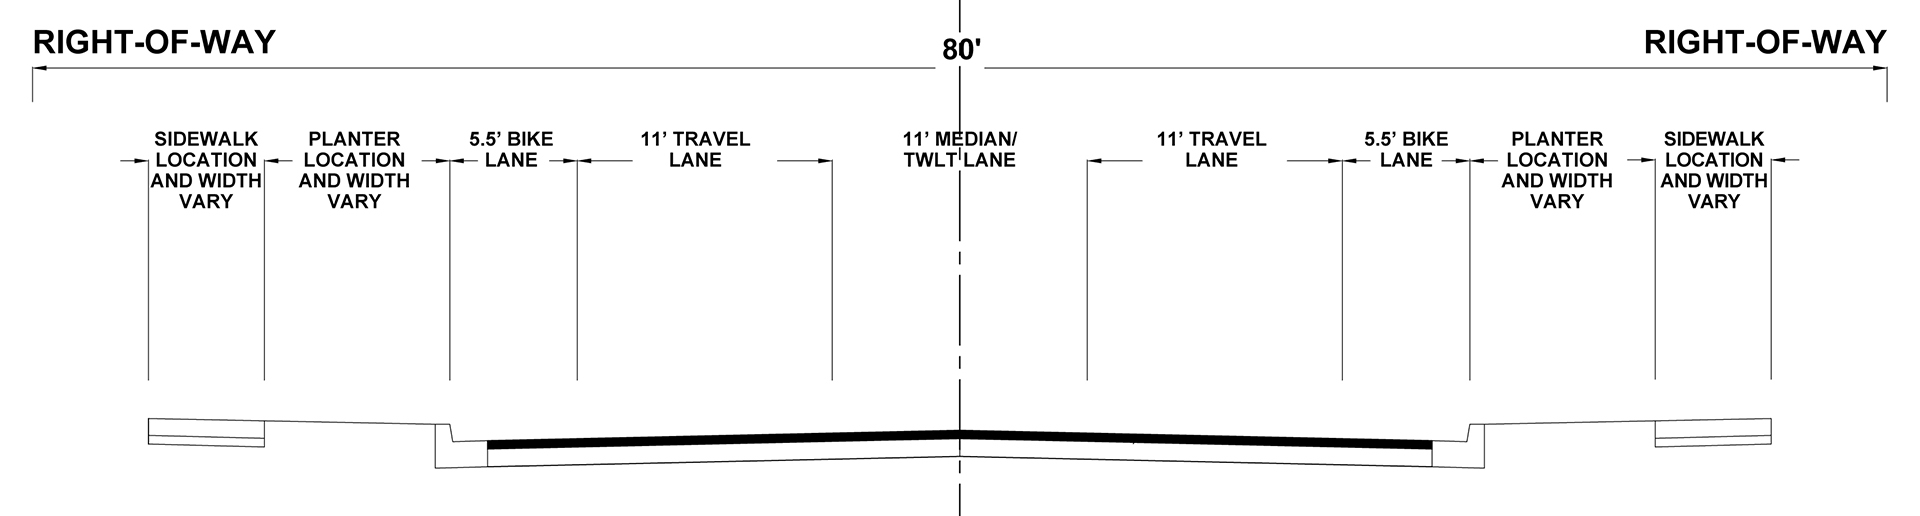 Galveston Avenue existing cross section showing sidewalks and planter locations with varying widths, one 5.5' bike lane on each side, one 11' travel lane on each side, and an 11' median/TWLT lane.